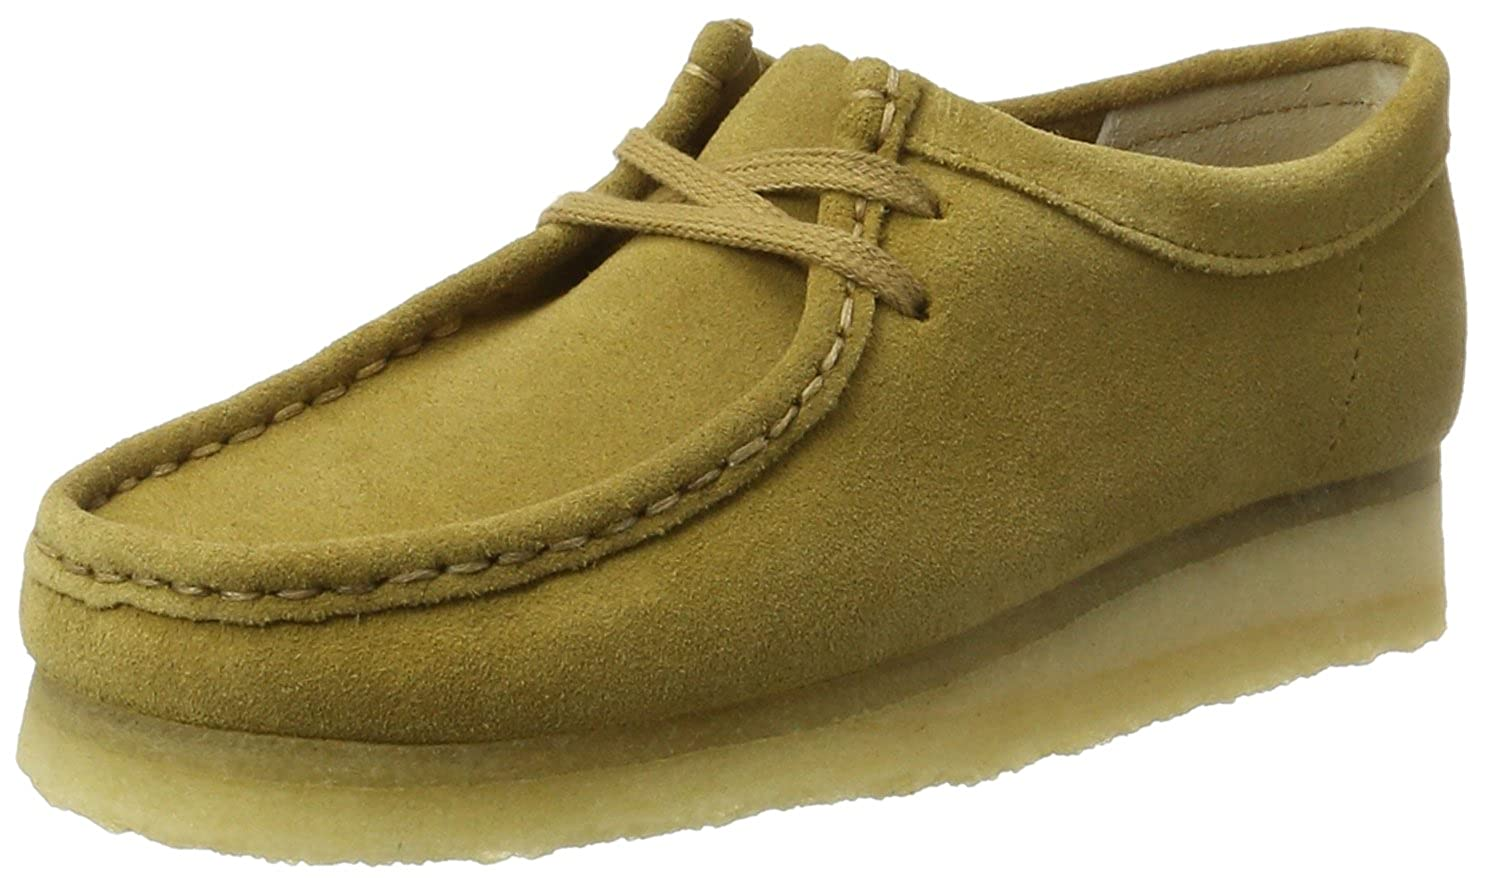 Clarks Originals Wallabee, Scarpe Stringate Donna Verde (Ochre)